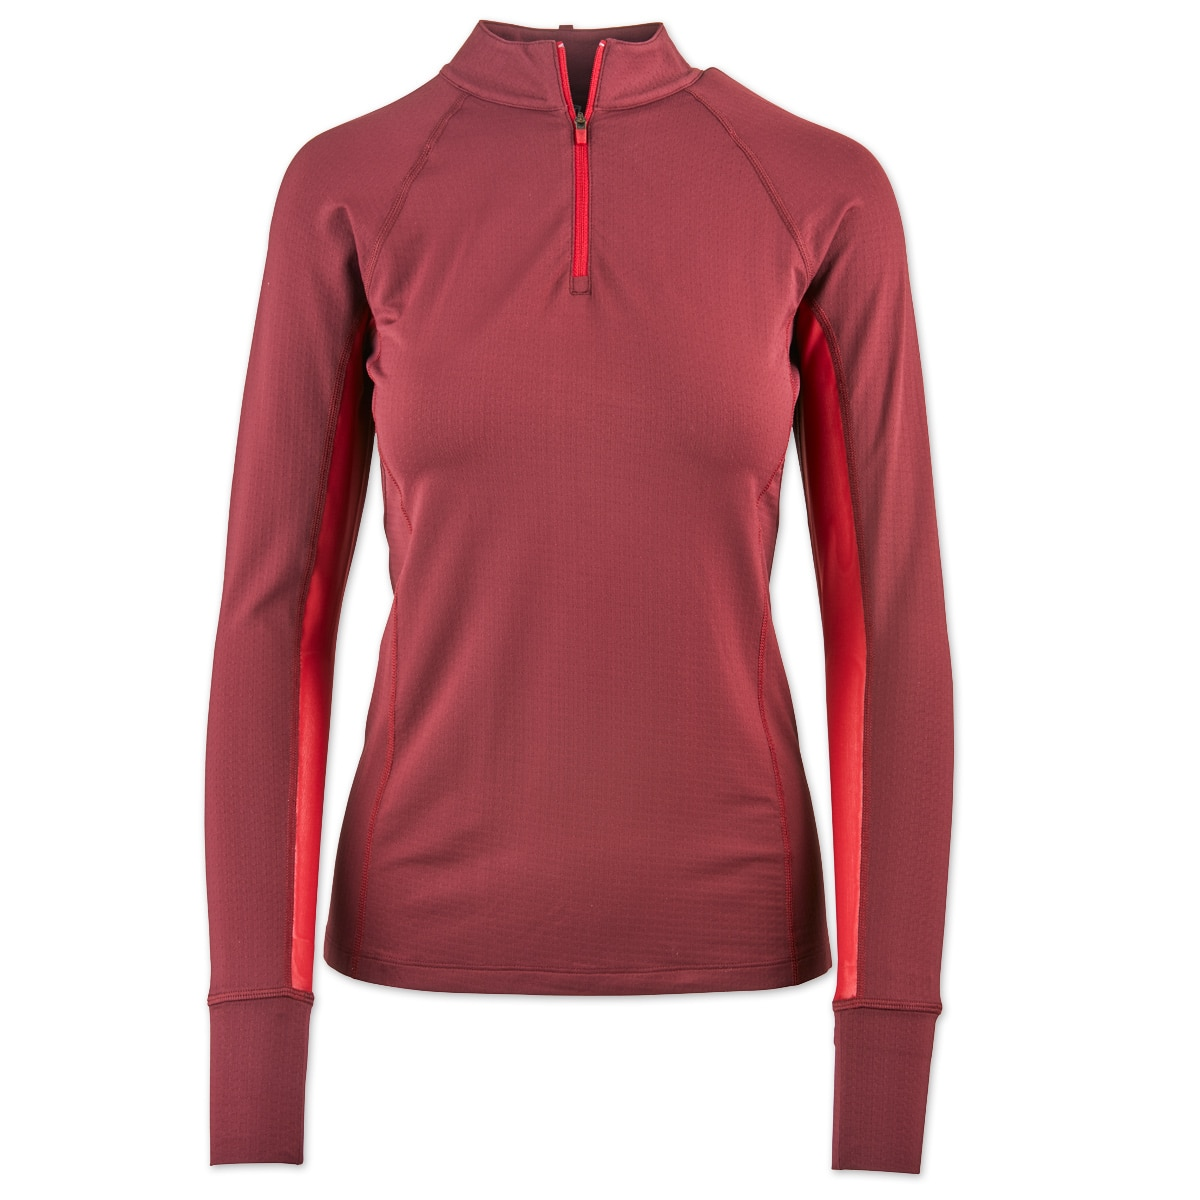 Noble Outfitters Ashley Performance Shirt - Clearance!